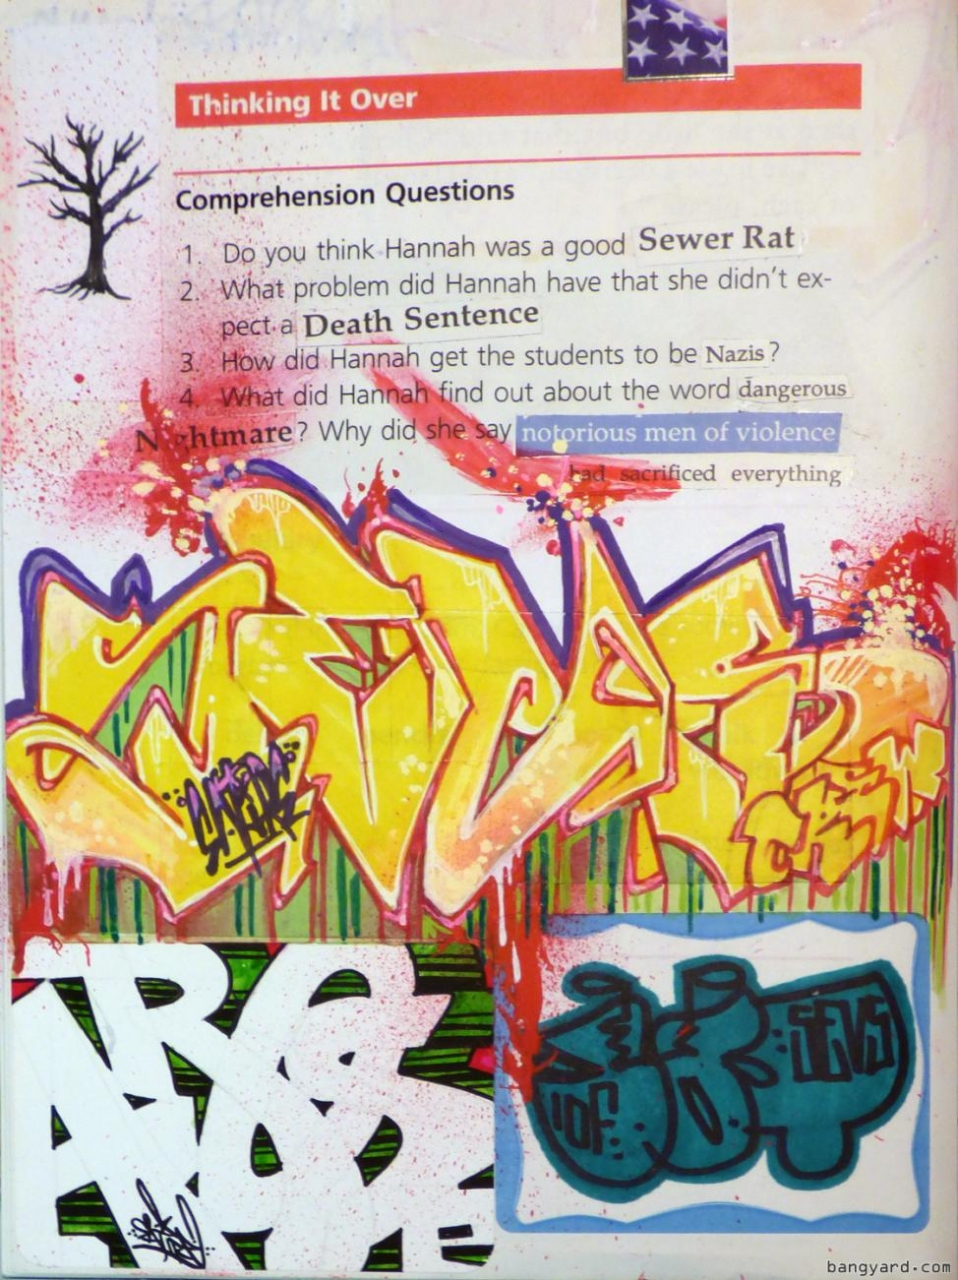 The Word Science In Graffiti